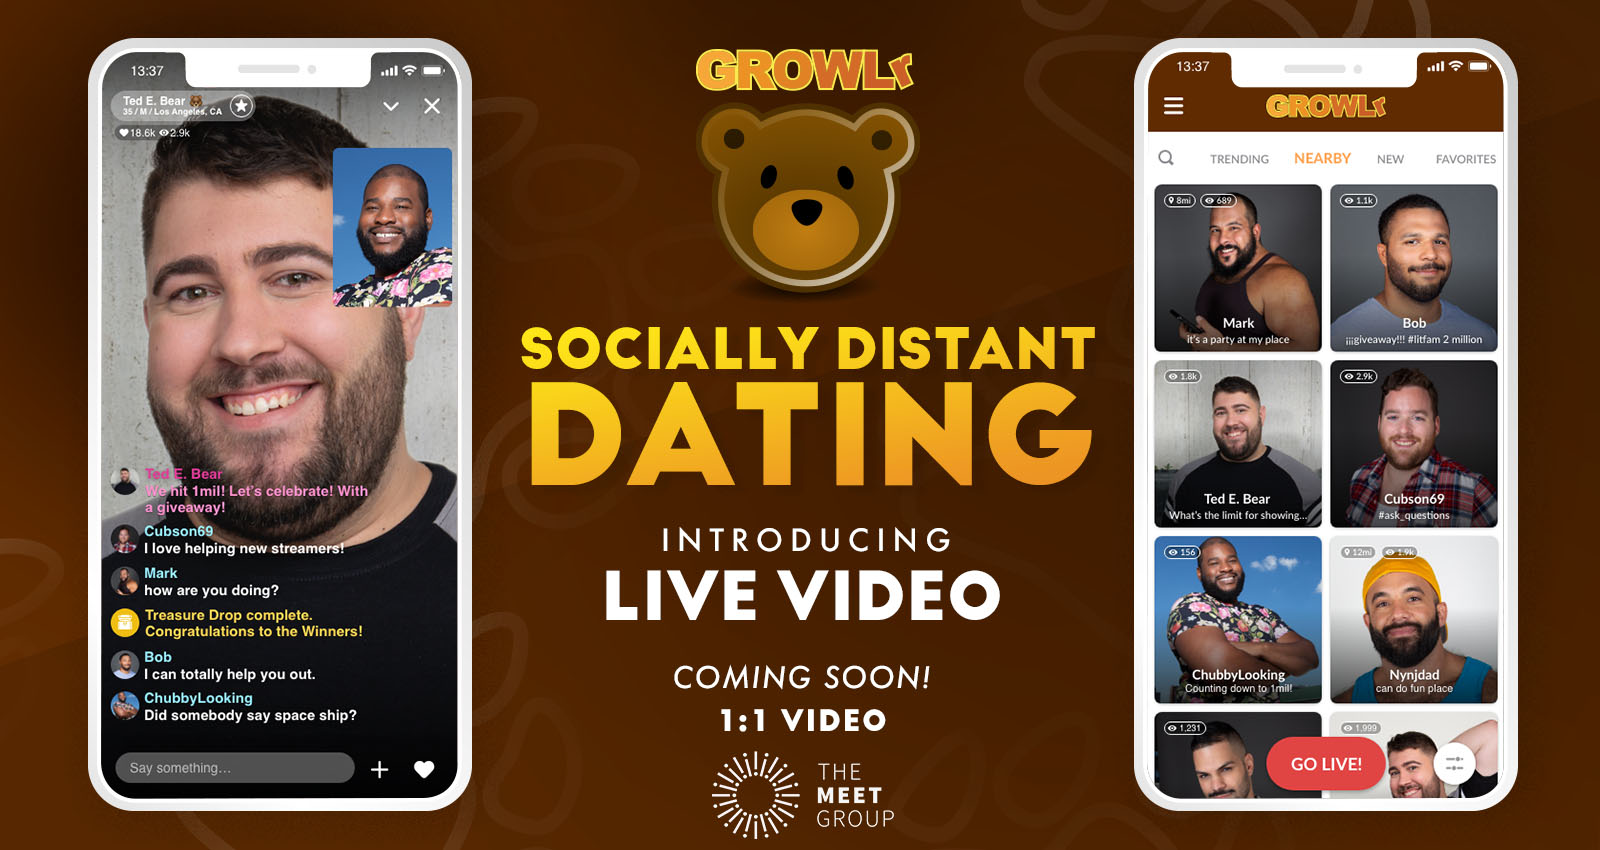 The Meet Group Adds Live Streaming Feature to GROWLr